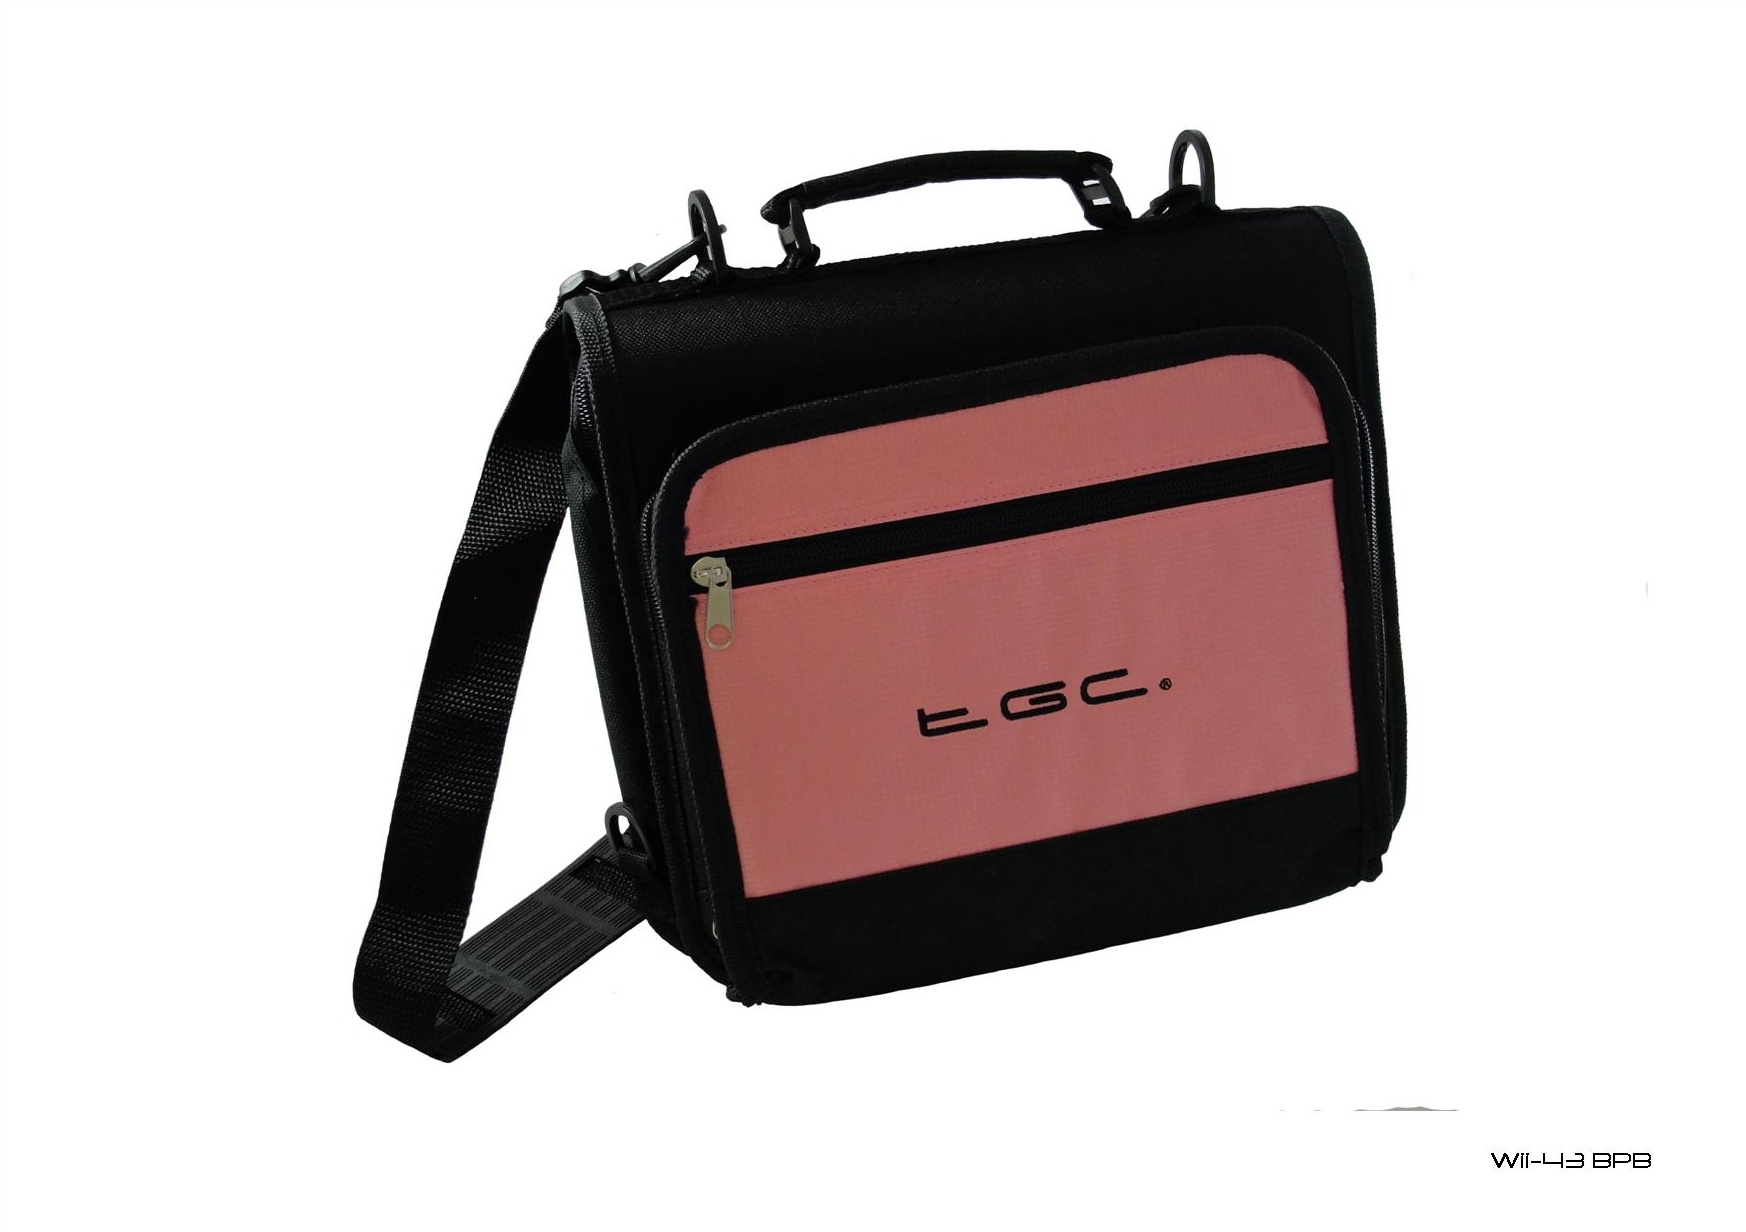 Product Photo/Baby Pink & Black TGC Carry Case bag for the Toshiba Thrive 16GB Tablet UK/Click to view.